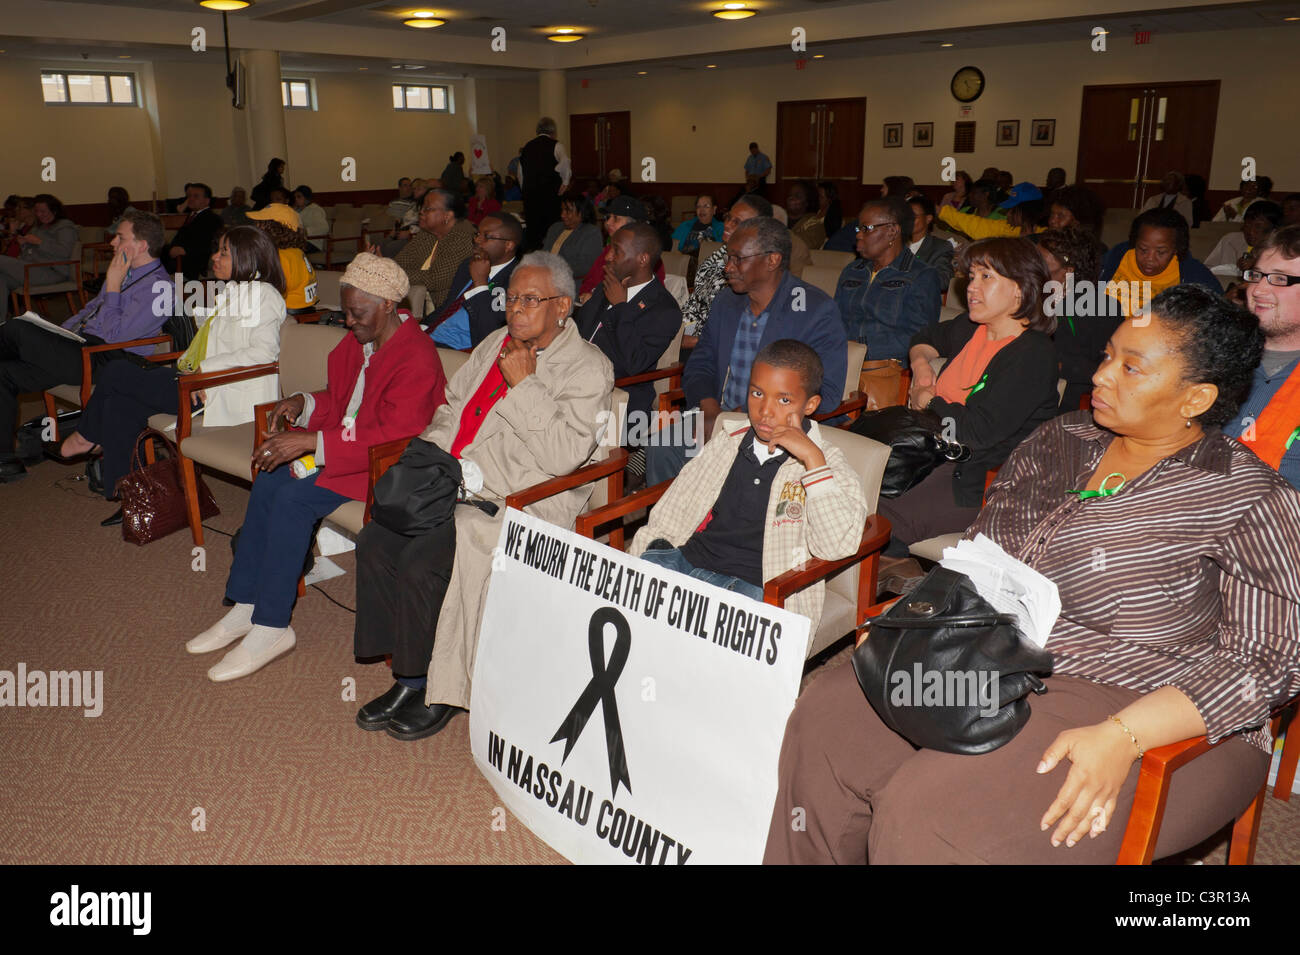 Boy with sign WE MOURN THE DEATH OF CIVIL RIGHTS IN NASSAU COUNTY, Ramel Smith Jr, Redistricting Hearing, May 9 - Stock Image